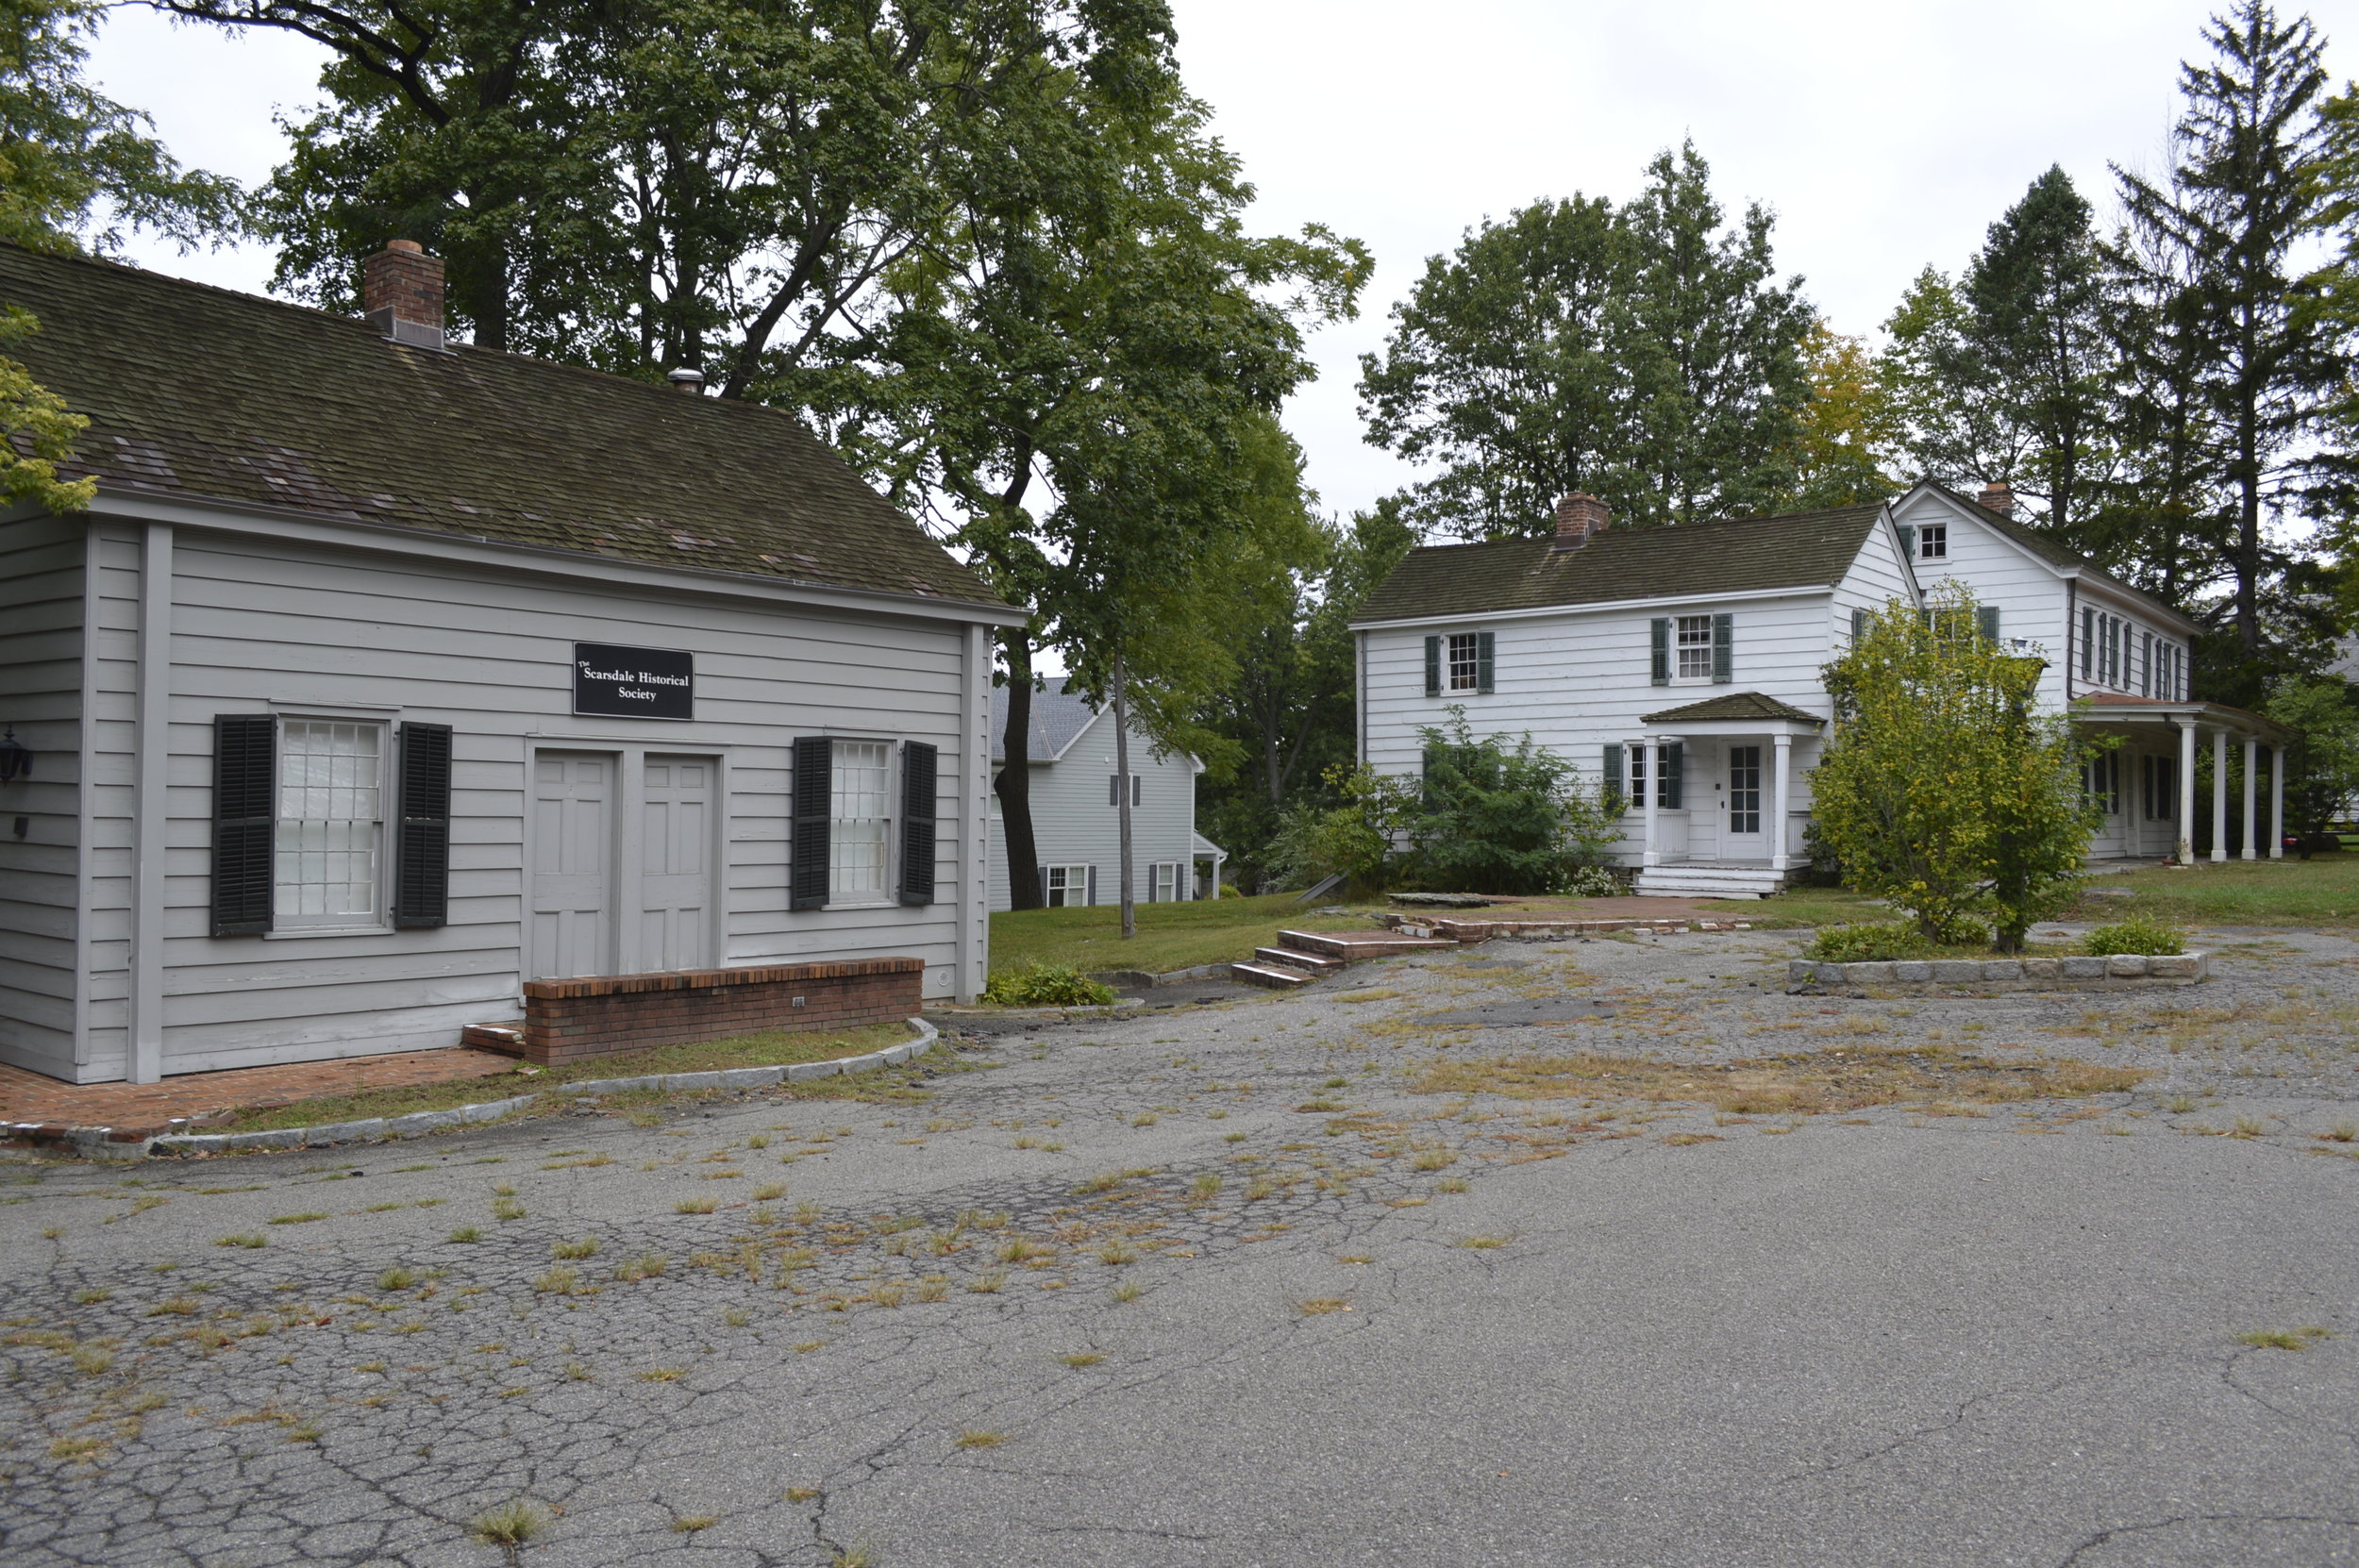 The Quaker Meeting House (left) was moved to the Cudner-Hyatt property in 1977.